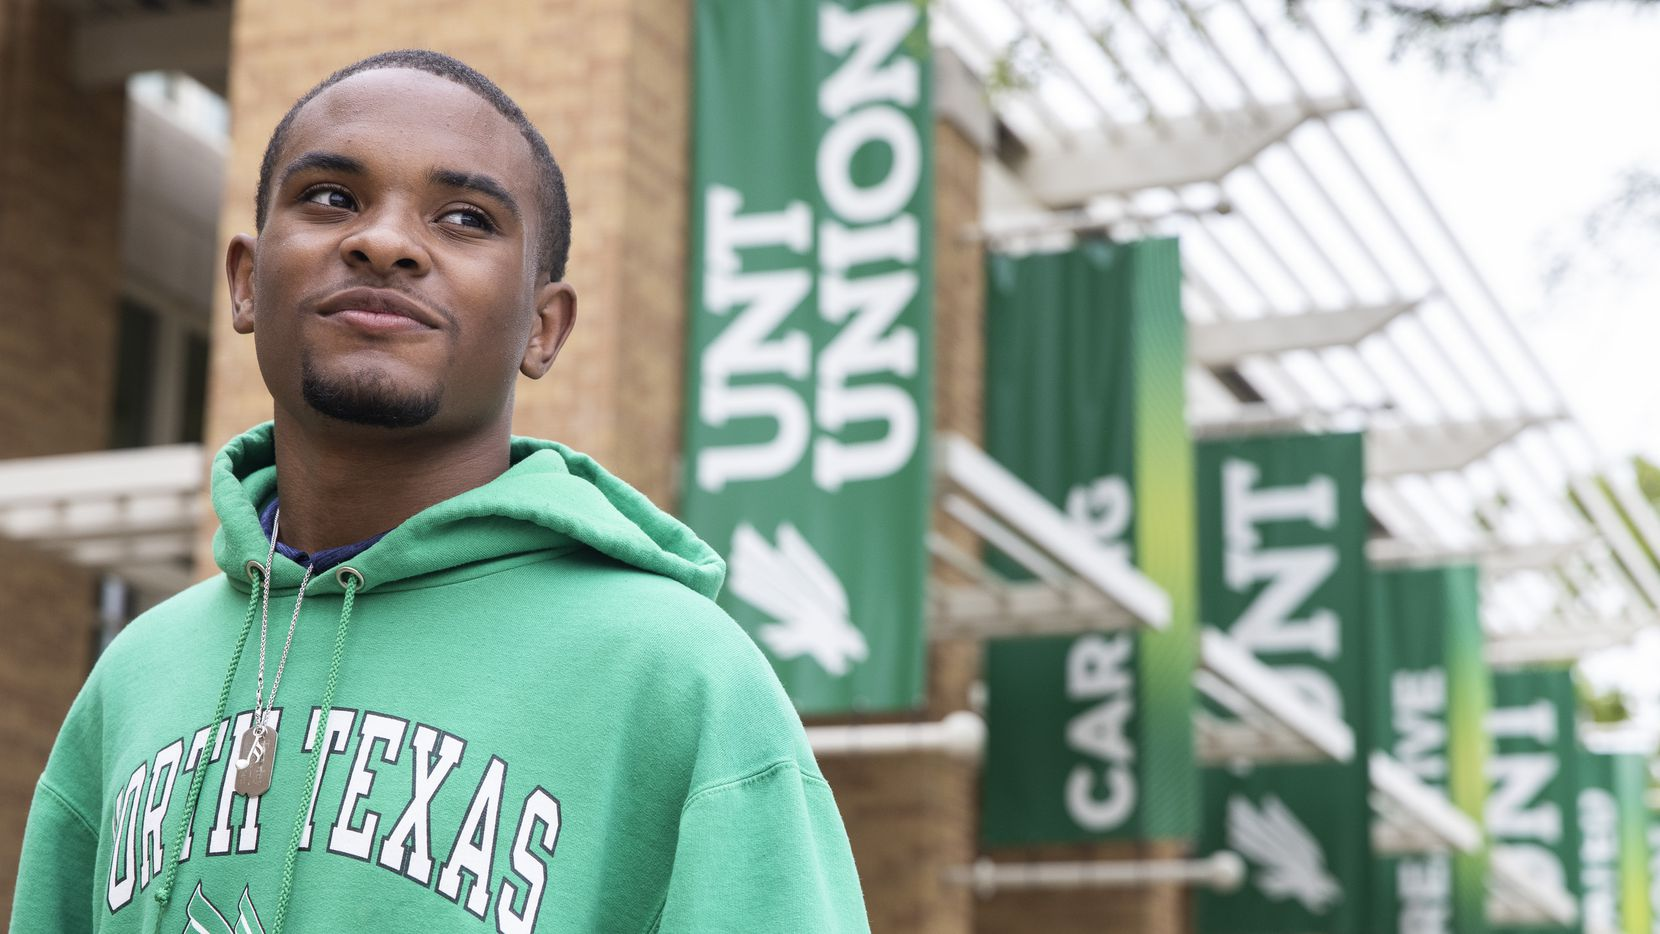 Texas university officials are planning a return to campus in the fall, hoping that the semester will be how campus life was before the pandemic. Freshman TKorian Mosley is excited, but does not know what to expect about starting classes in person after a year attending school online at the University of North Texas.